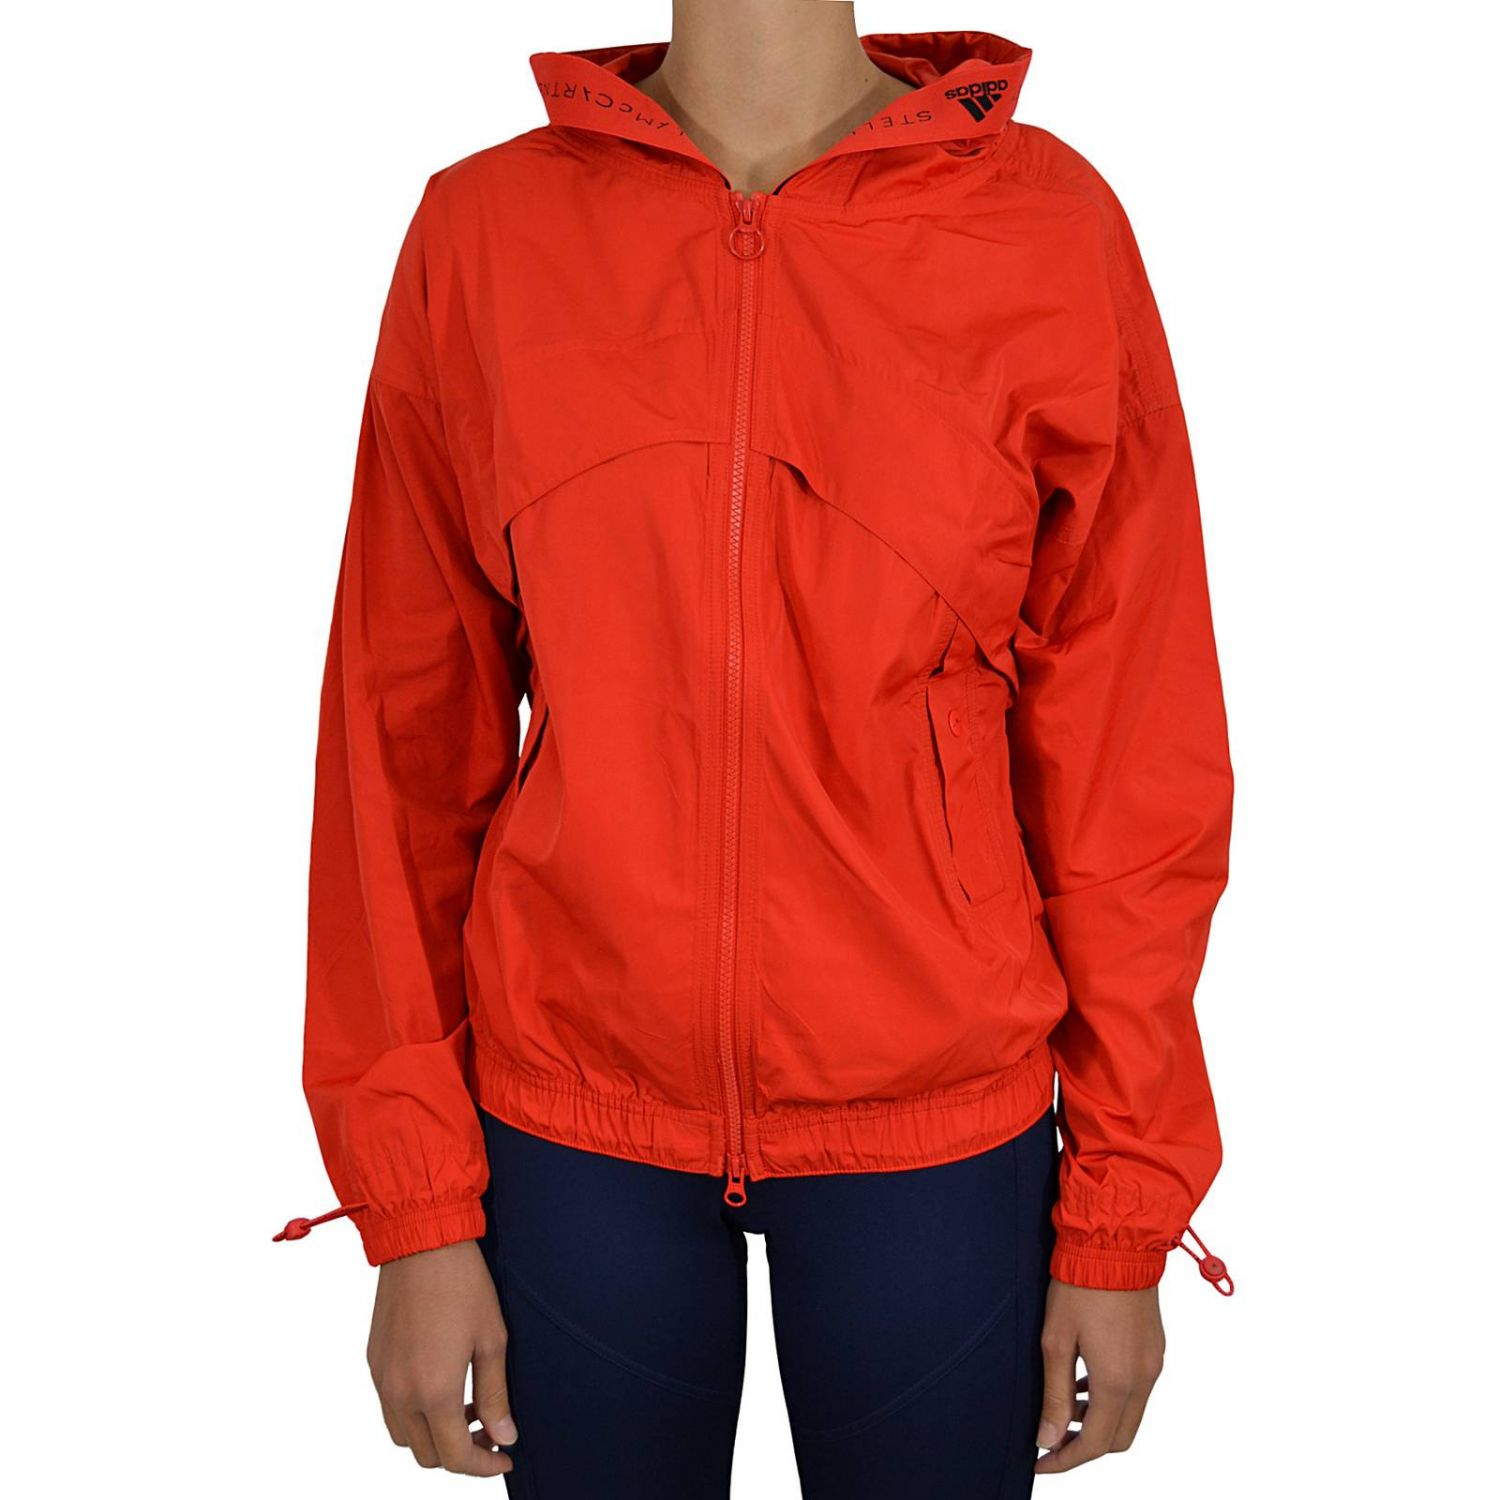 adidas stella mccartney veste